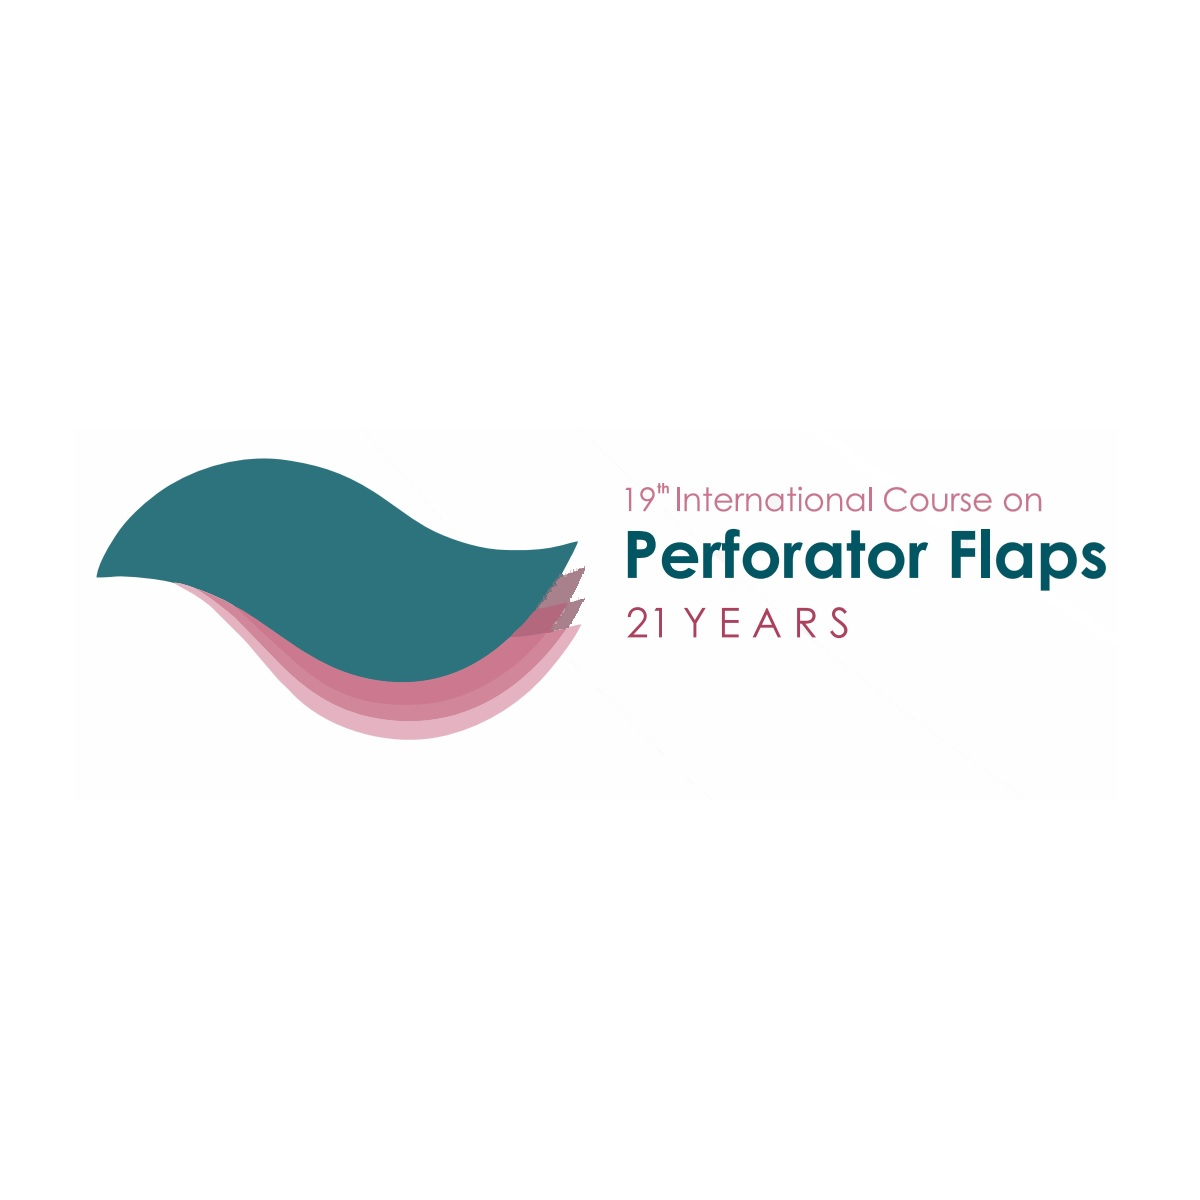 19th International Course on Perforator Flaps (ICPF) – 2018